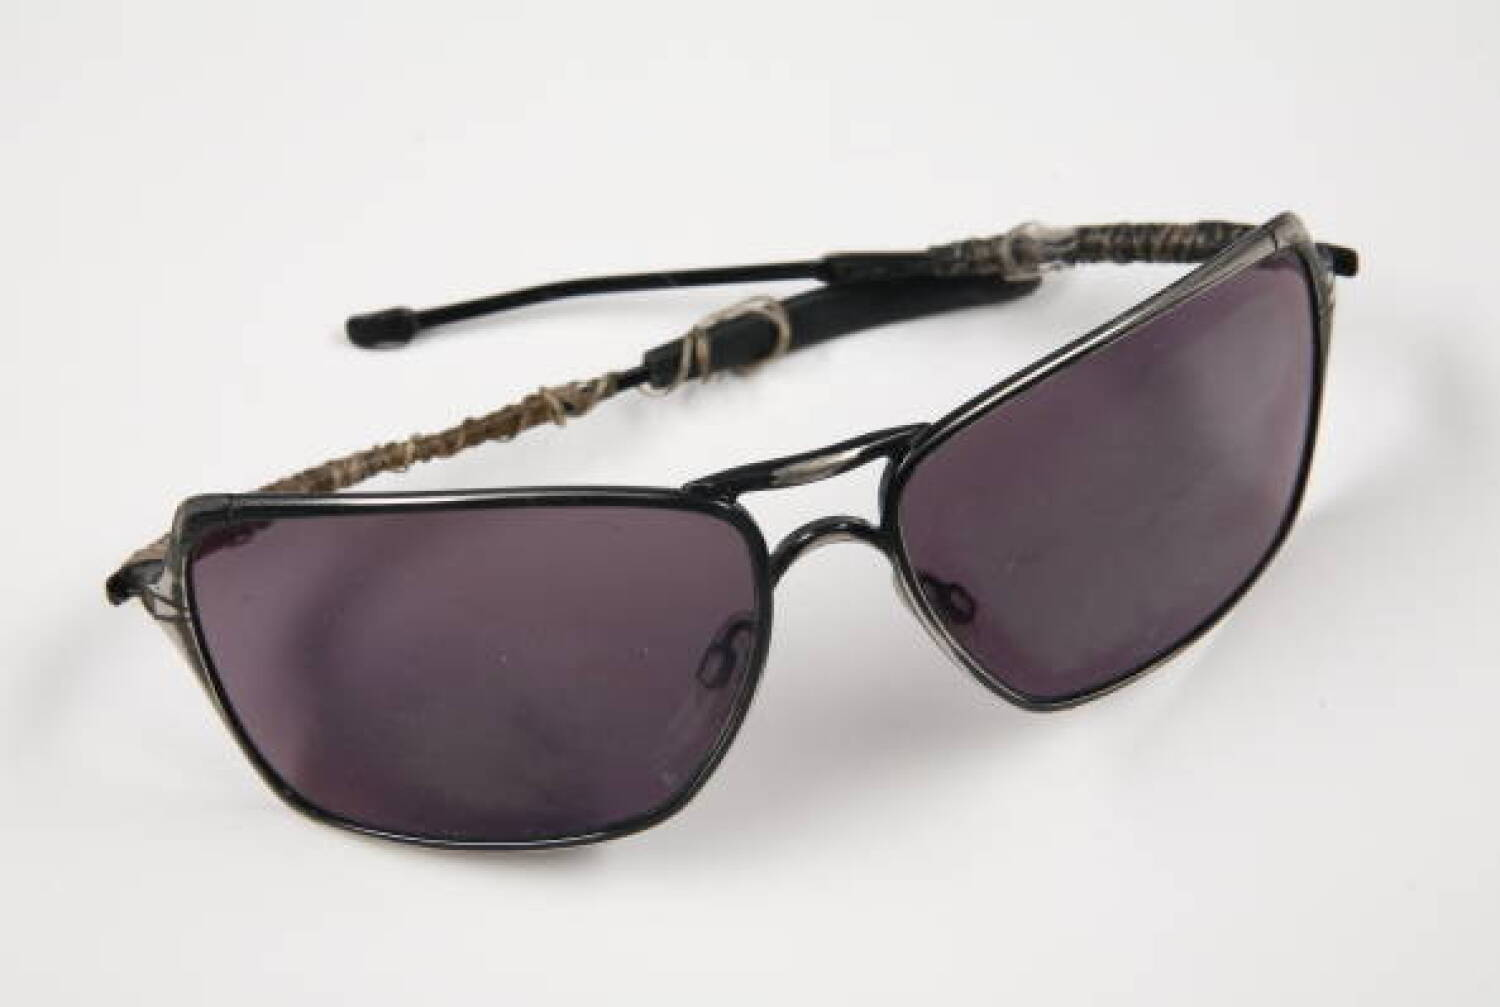 Oakley Sunglasses Inmate  the book of eli oakley sunglasses cur price 750